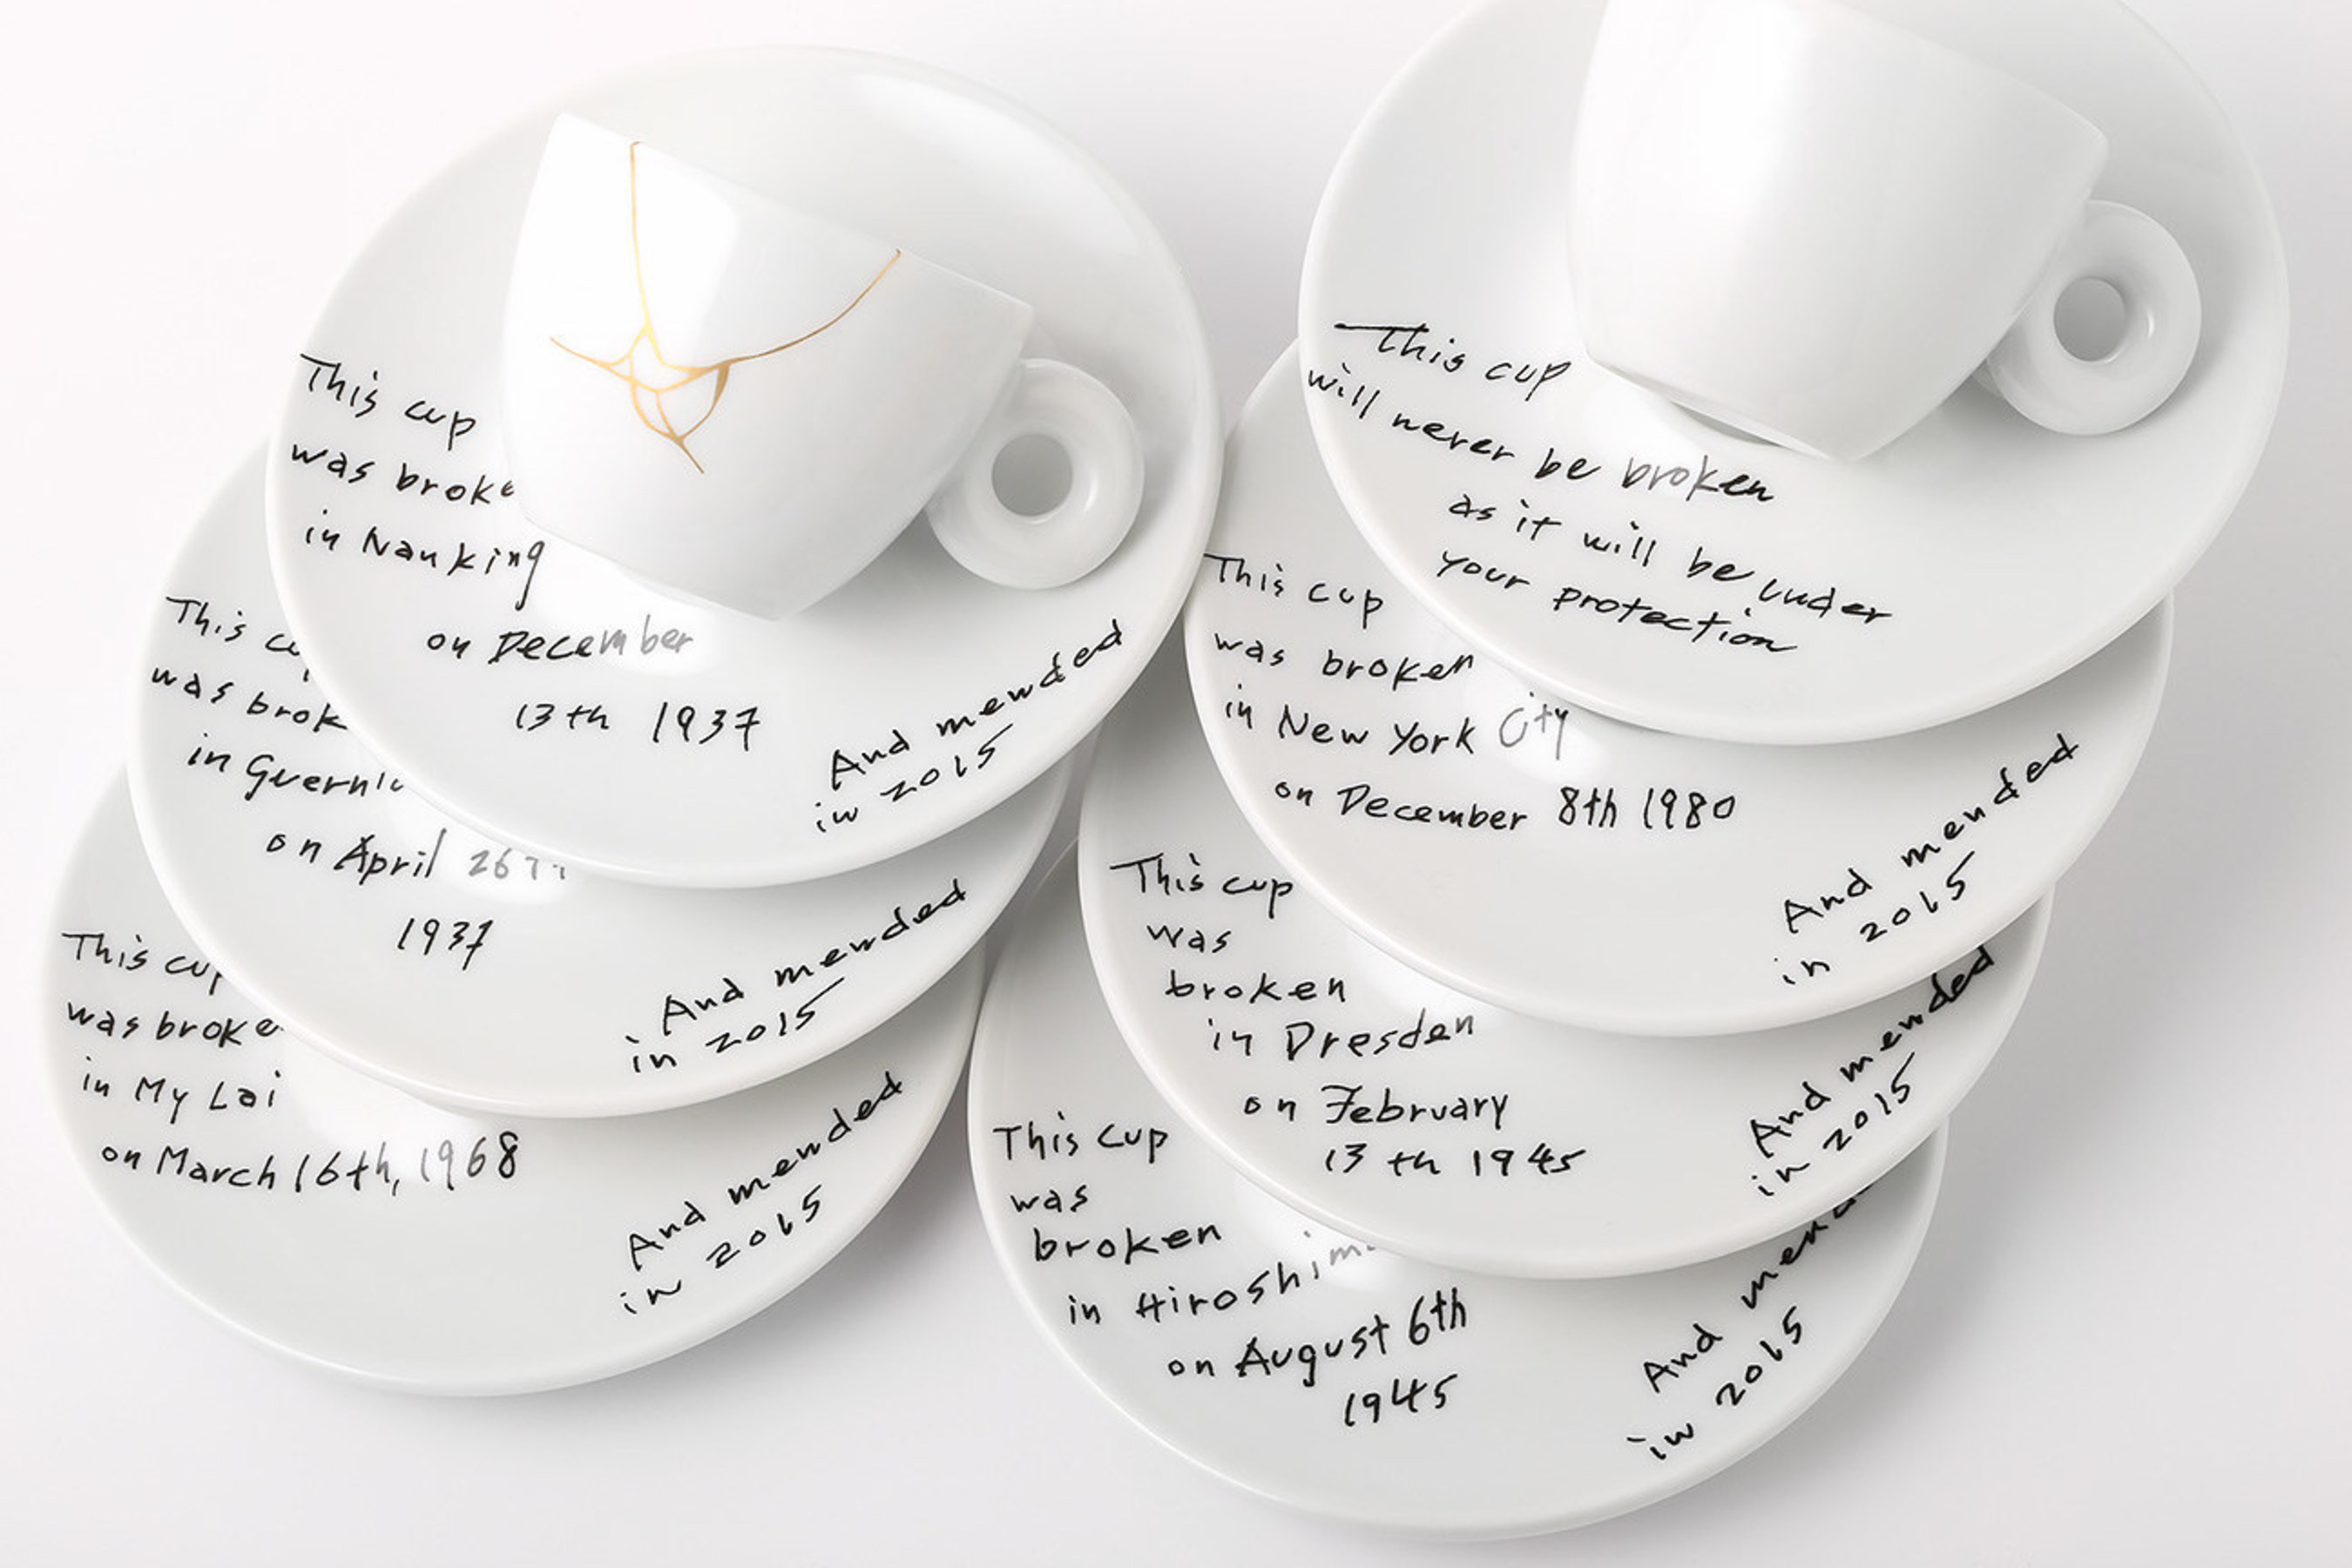 Yoko Ono: Mended Cups - illy Art Collection will be live on http://www.moma.org on 5/8. *Image provided by illy North America showing the newest collaboration for the illy Art Collection of espresso cups and saucers